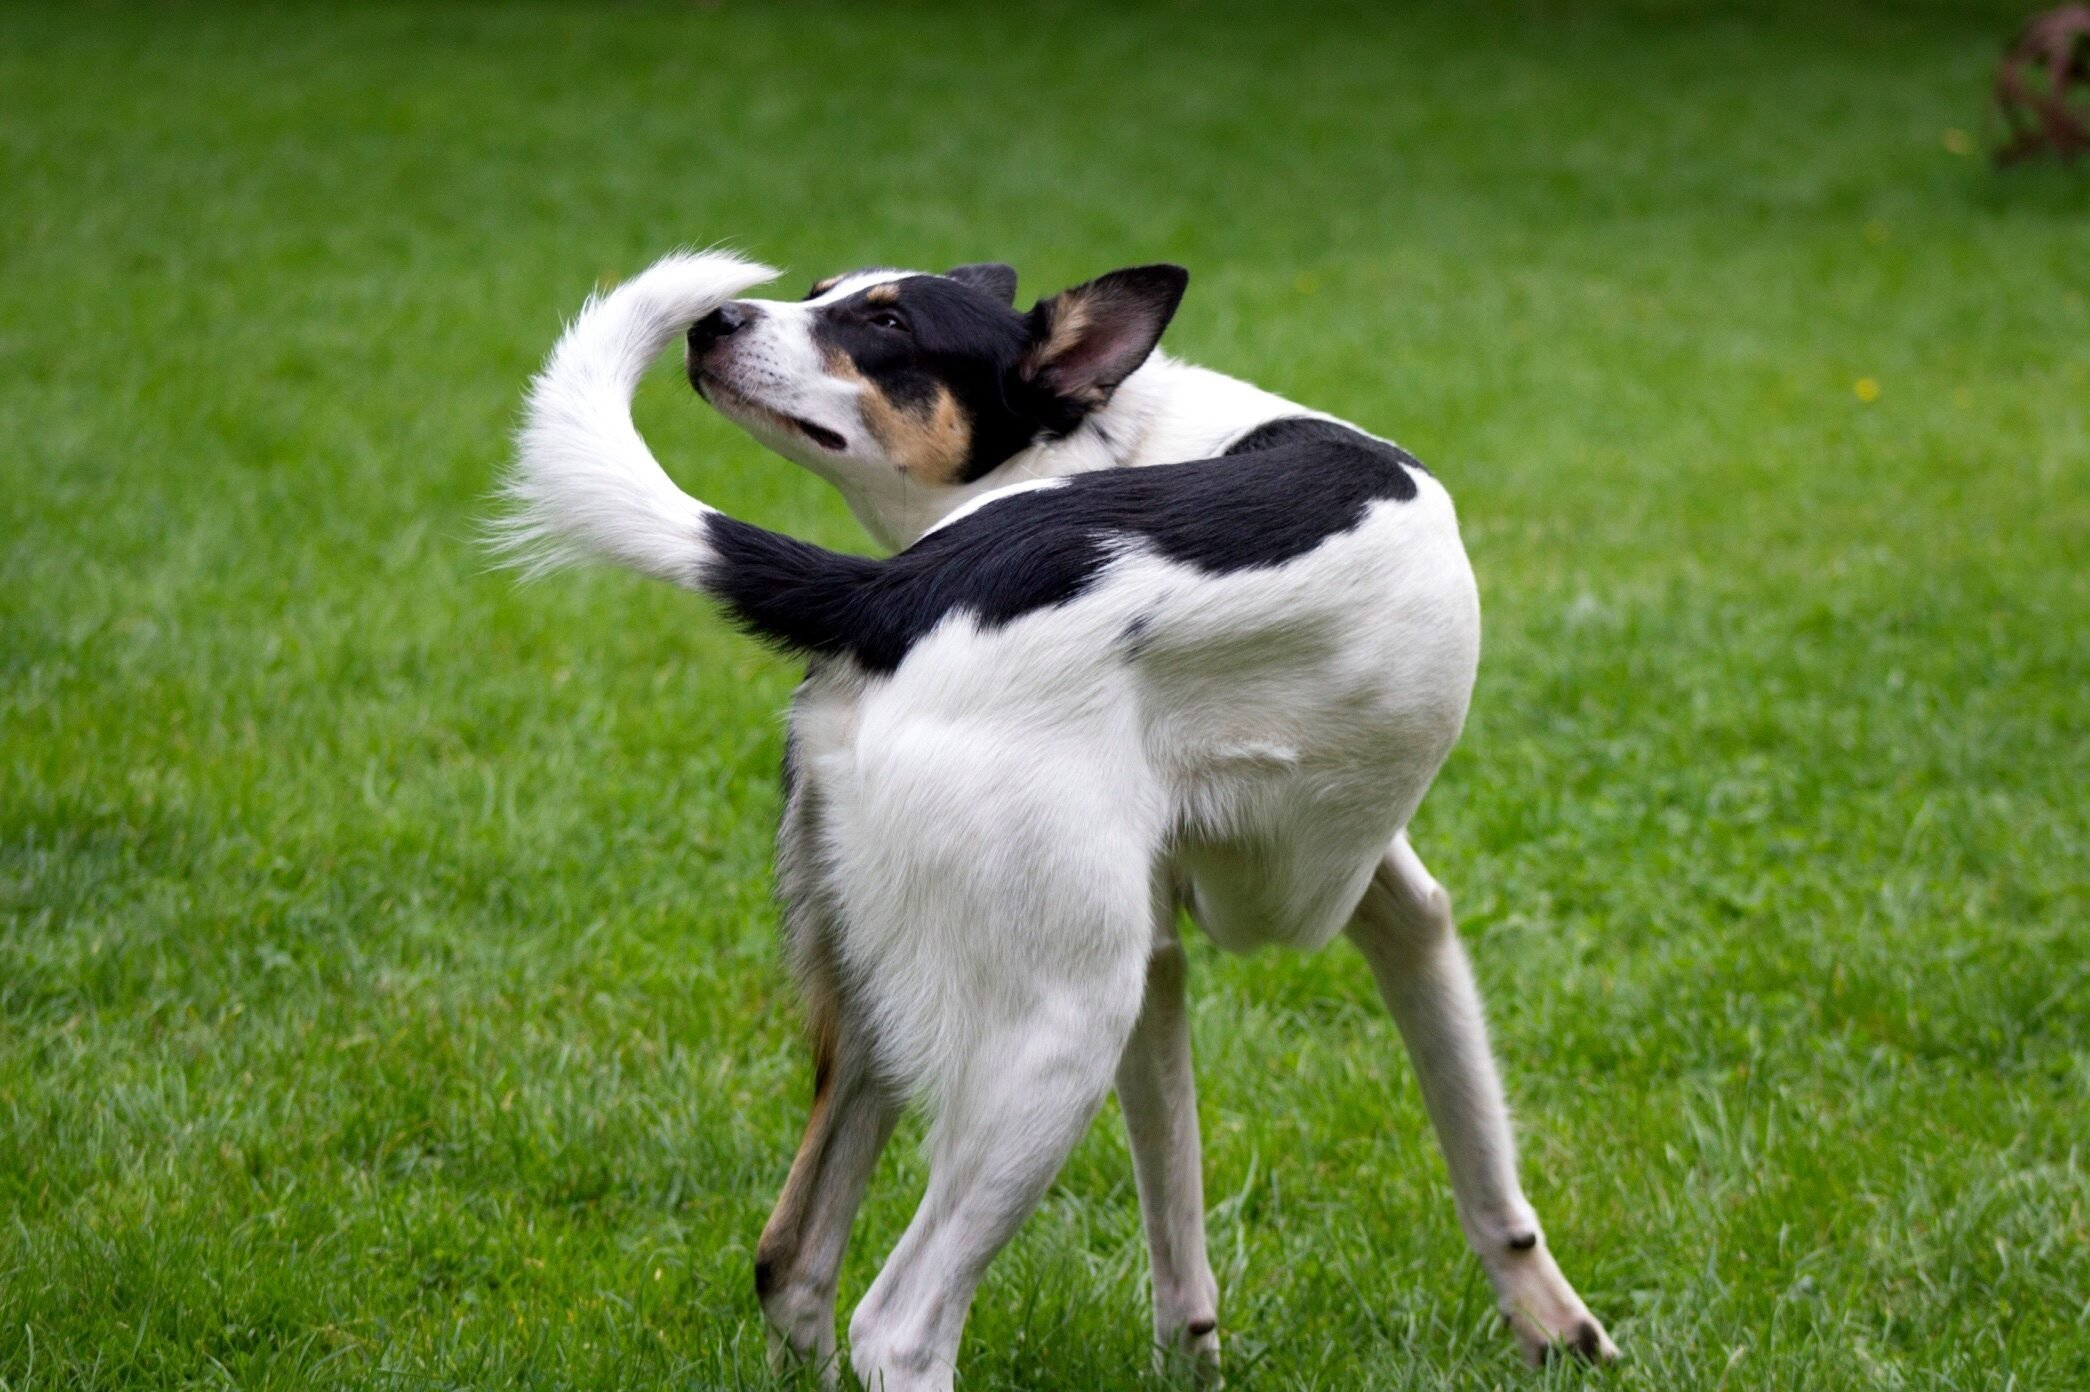 Dog Smelling Tail On Grassy Field